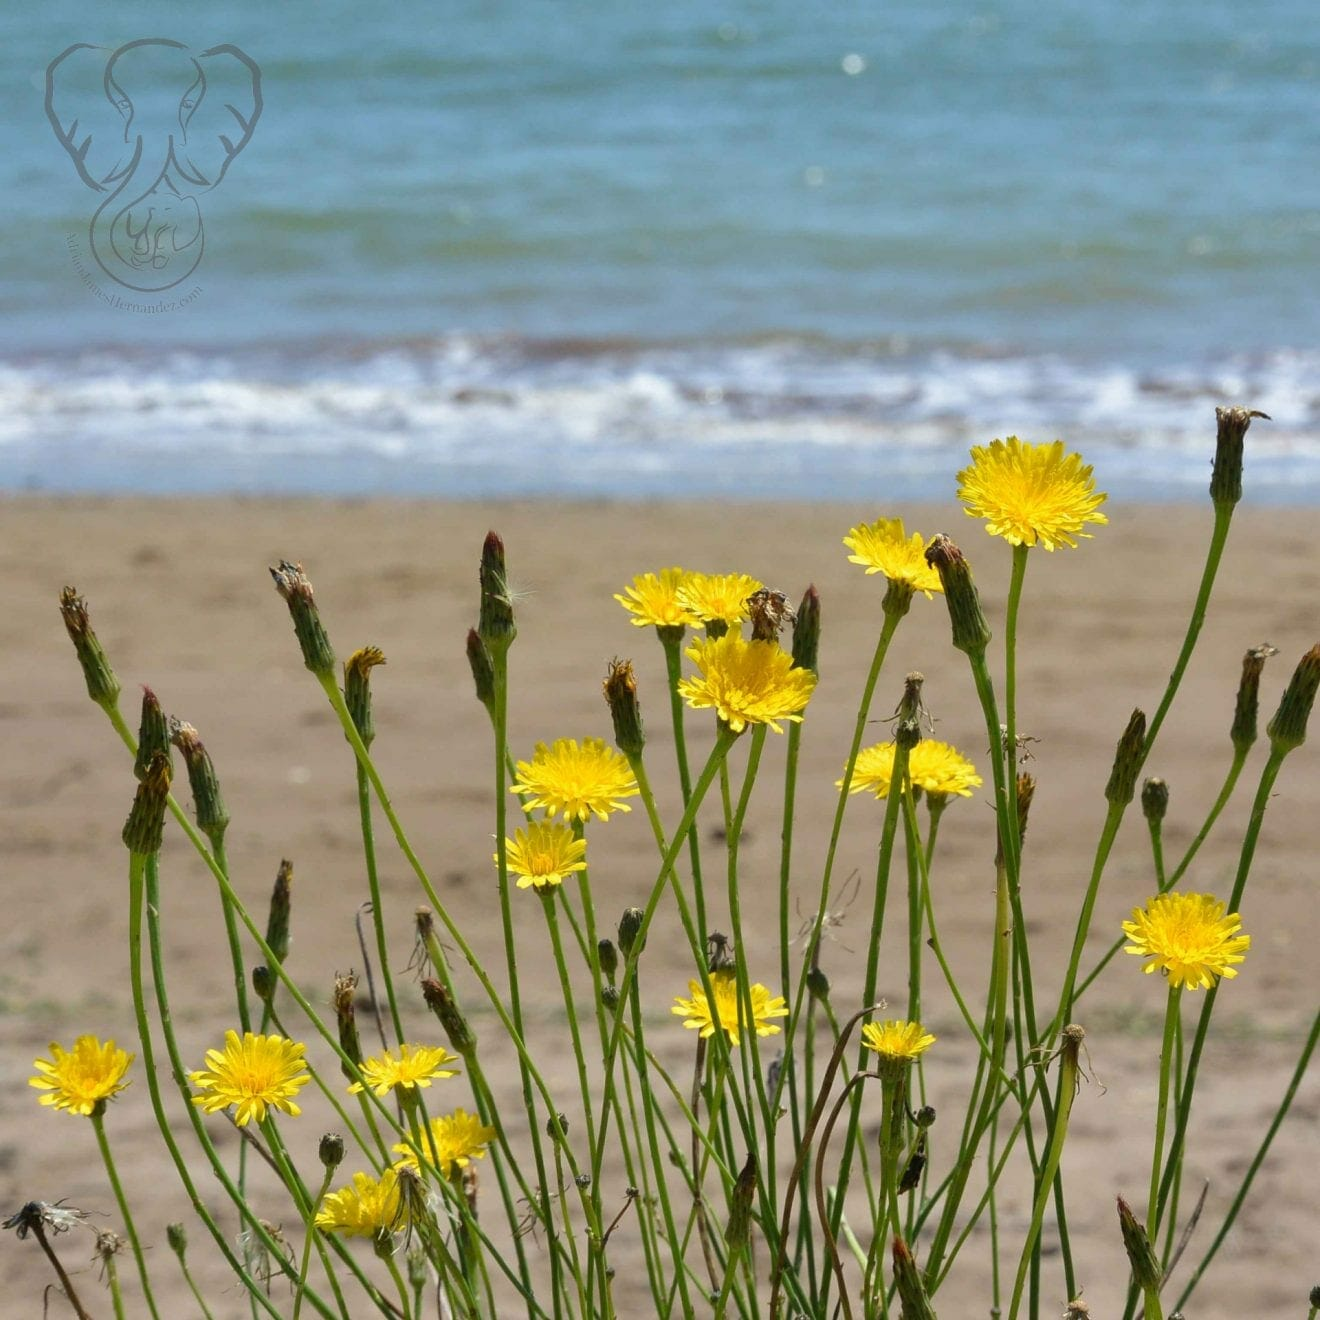 Dandelions over Te Ti Bay, Waitanga, New Zealand (Miranda Hernandez)